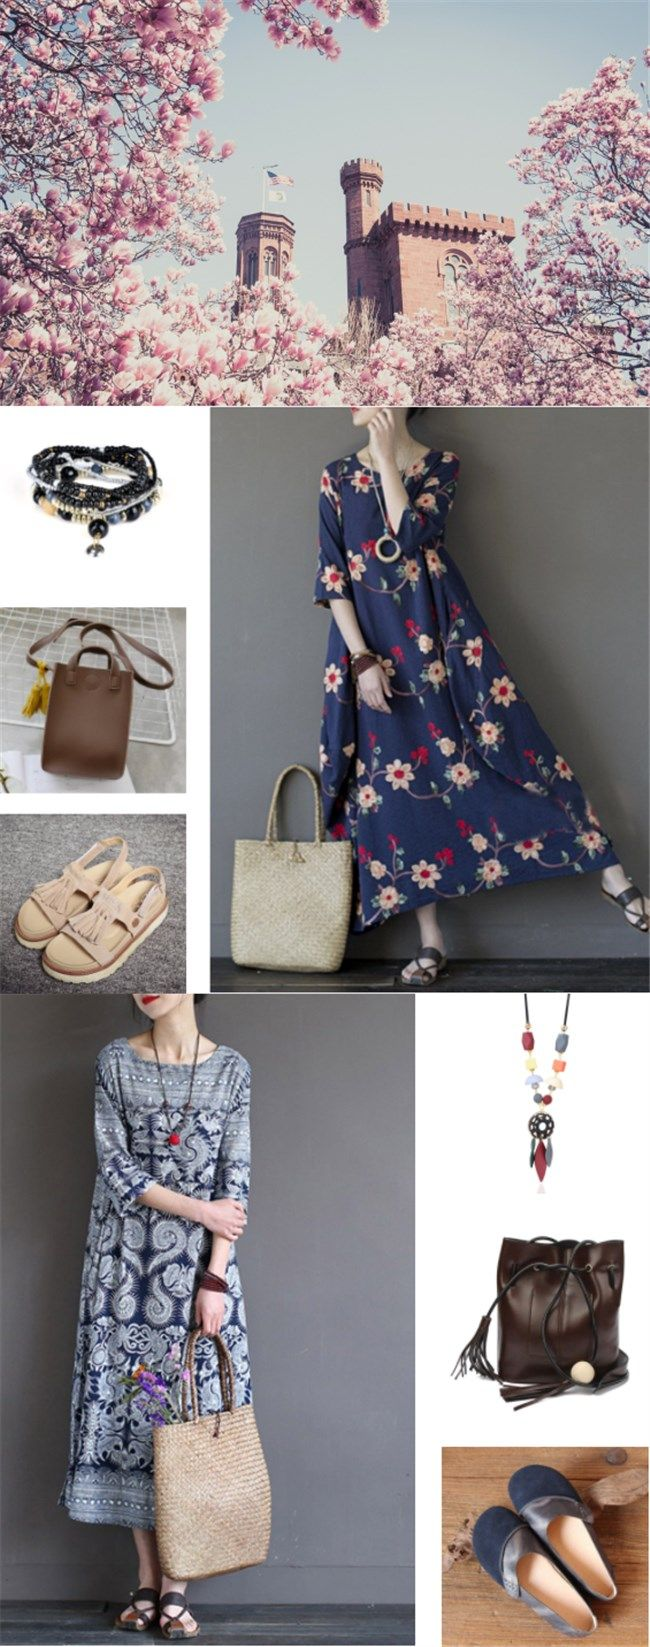 #summer outfits#fairy lady#flower dress # #retro look   printed maxi dress+brown square bag+color clocking  bracelet +beige sandals